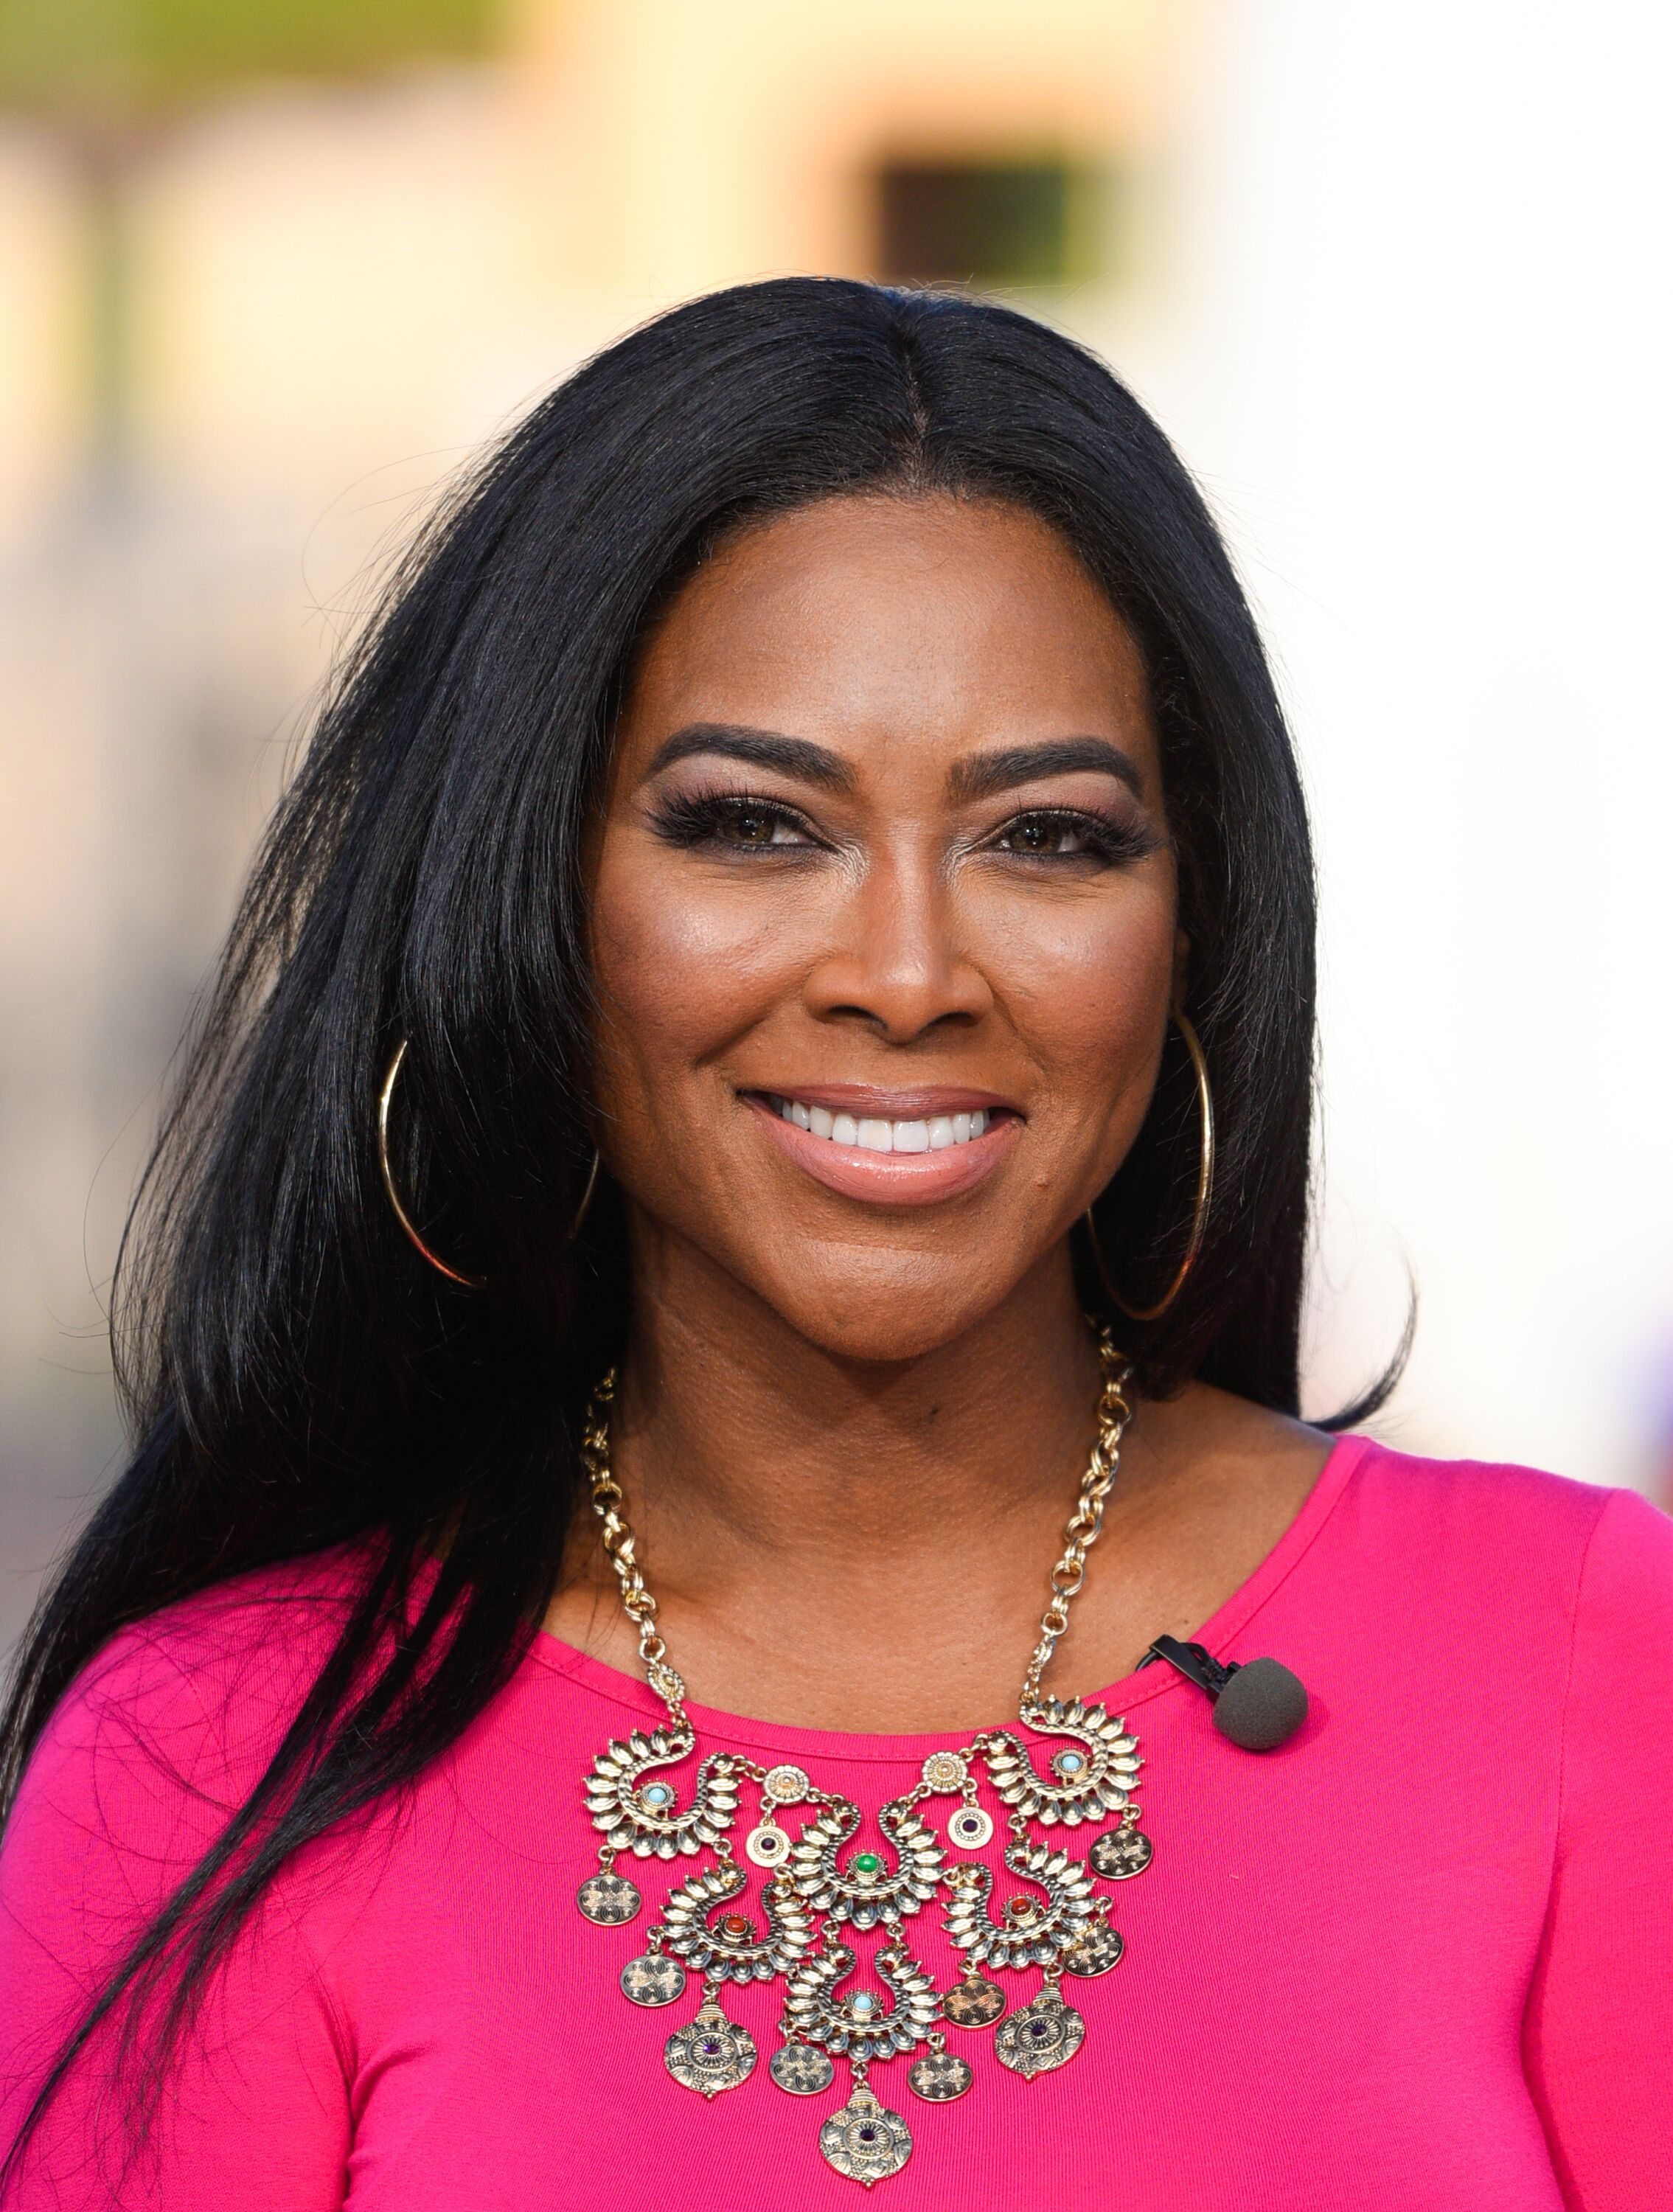 """Real Housewives of Atlanta"" star Kenya Moore/ Source: Getty Images"